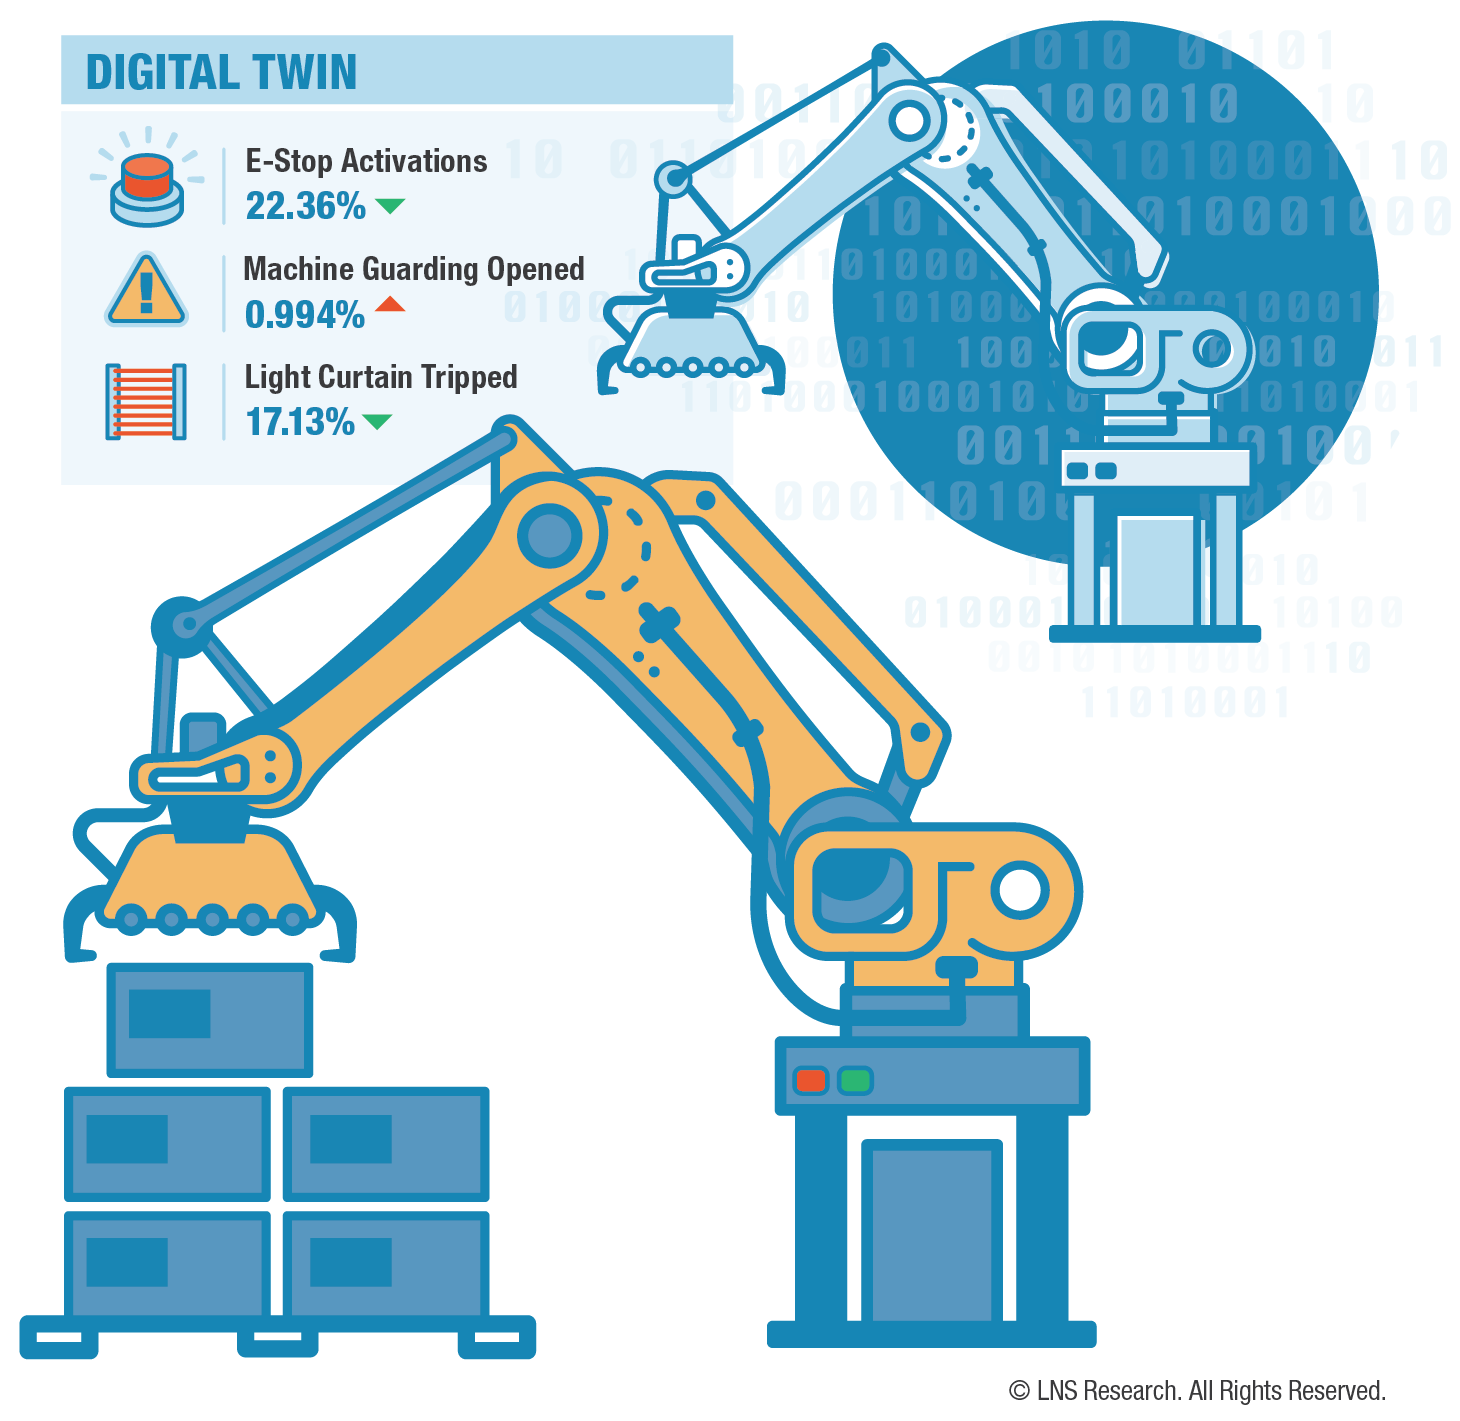 Safety, Digital Twin